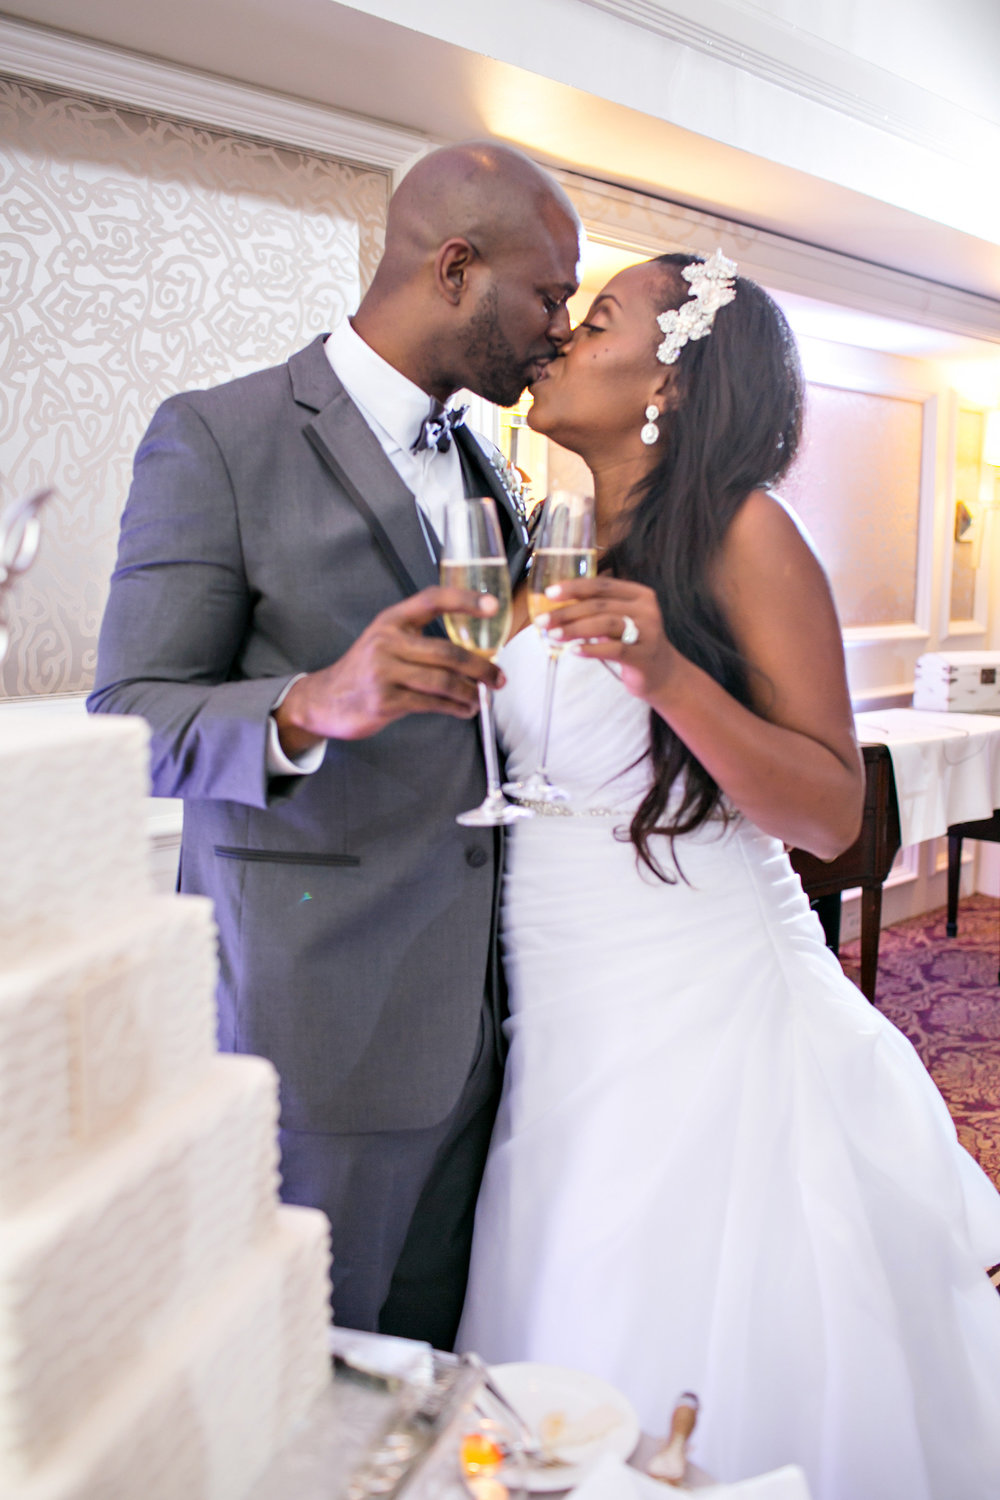 Image from  Leslie & Jamaal's Wedding ; Courtesy of  Michelle Davina Photography